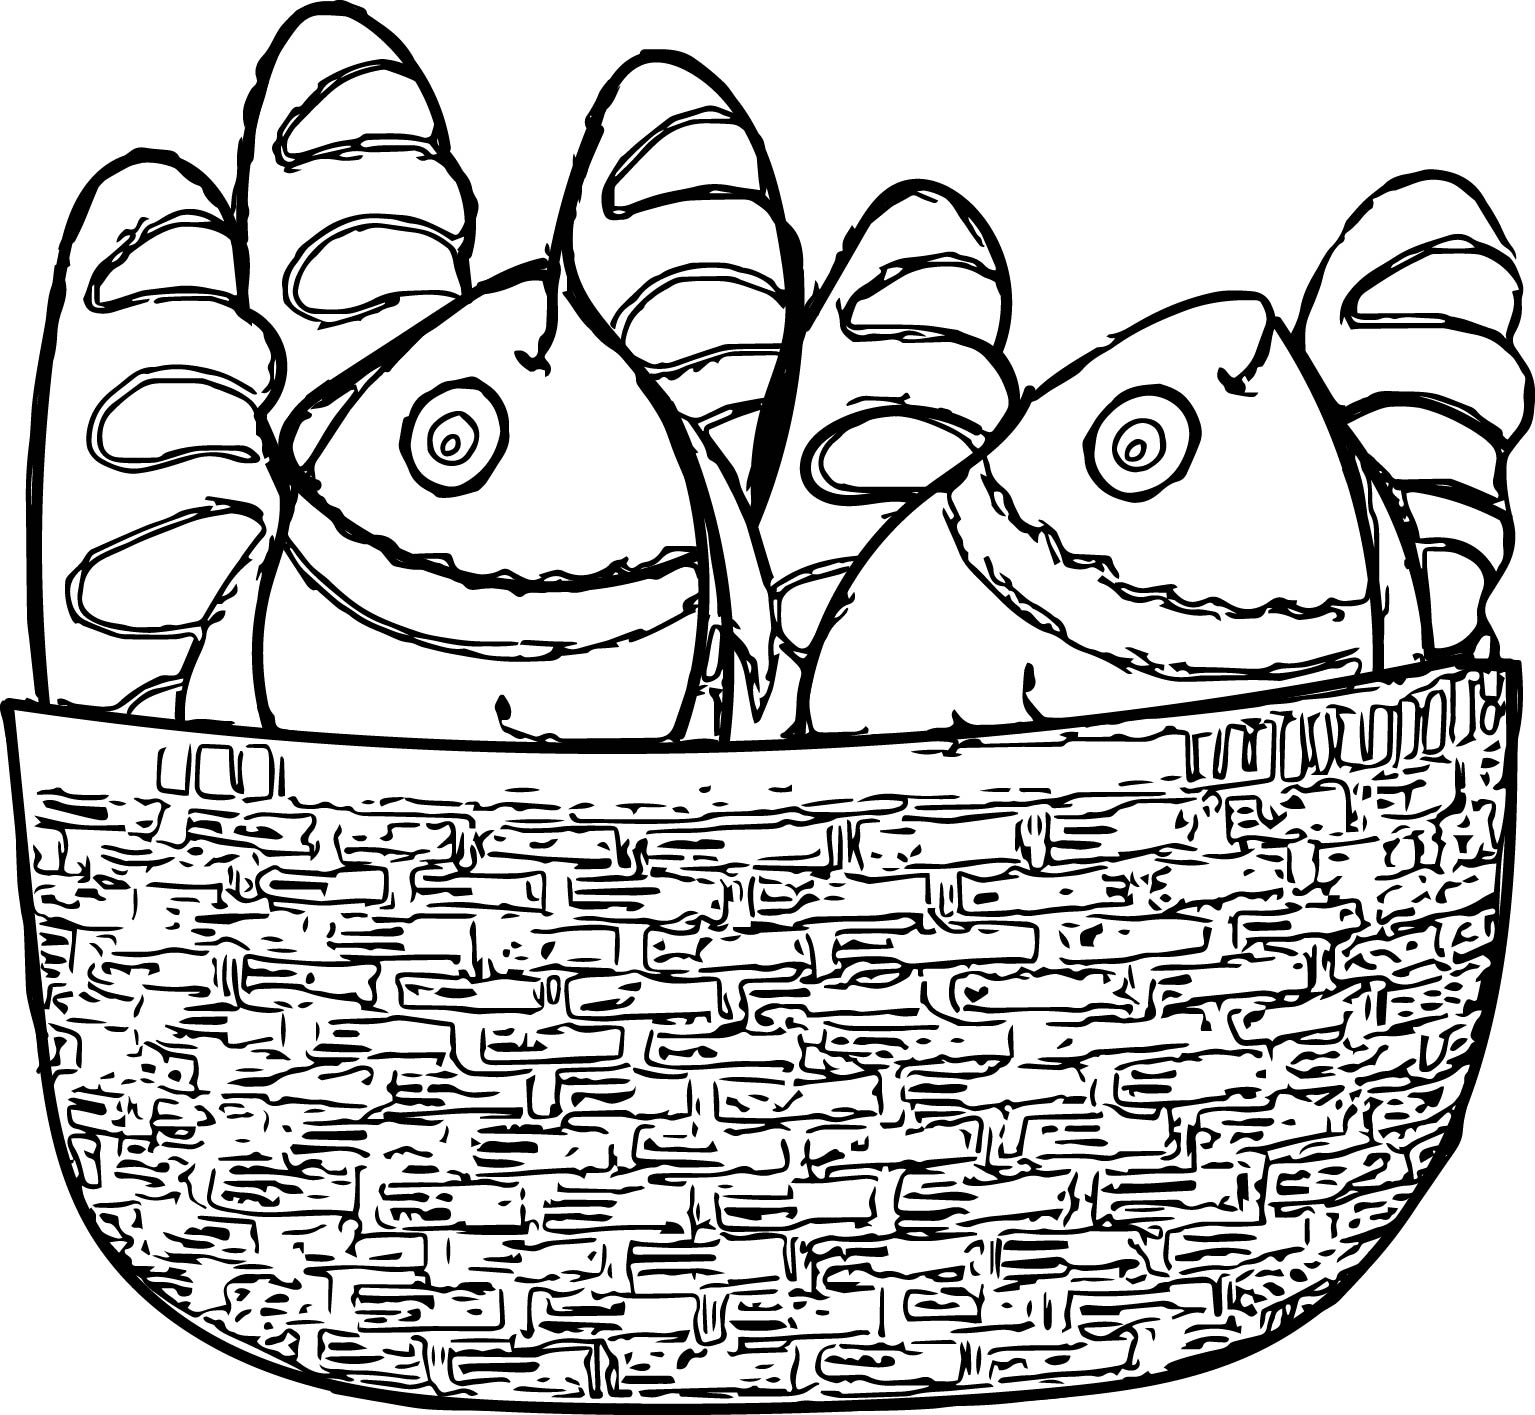 1535x1415 Loaves And Fishes Coloring Pages Gallery Free Coloring Sheets